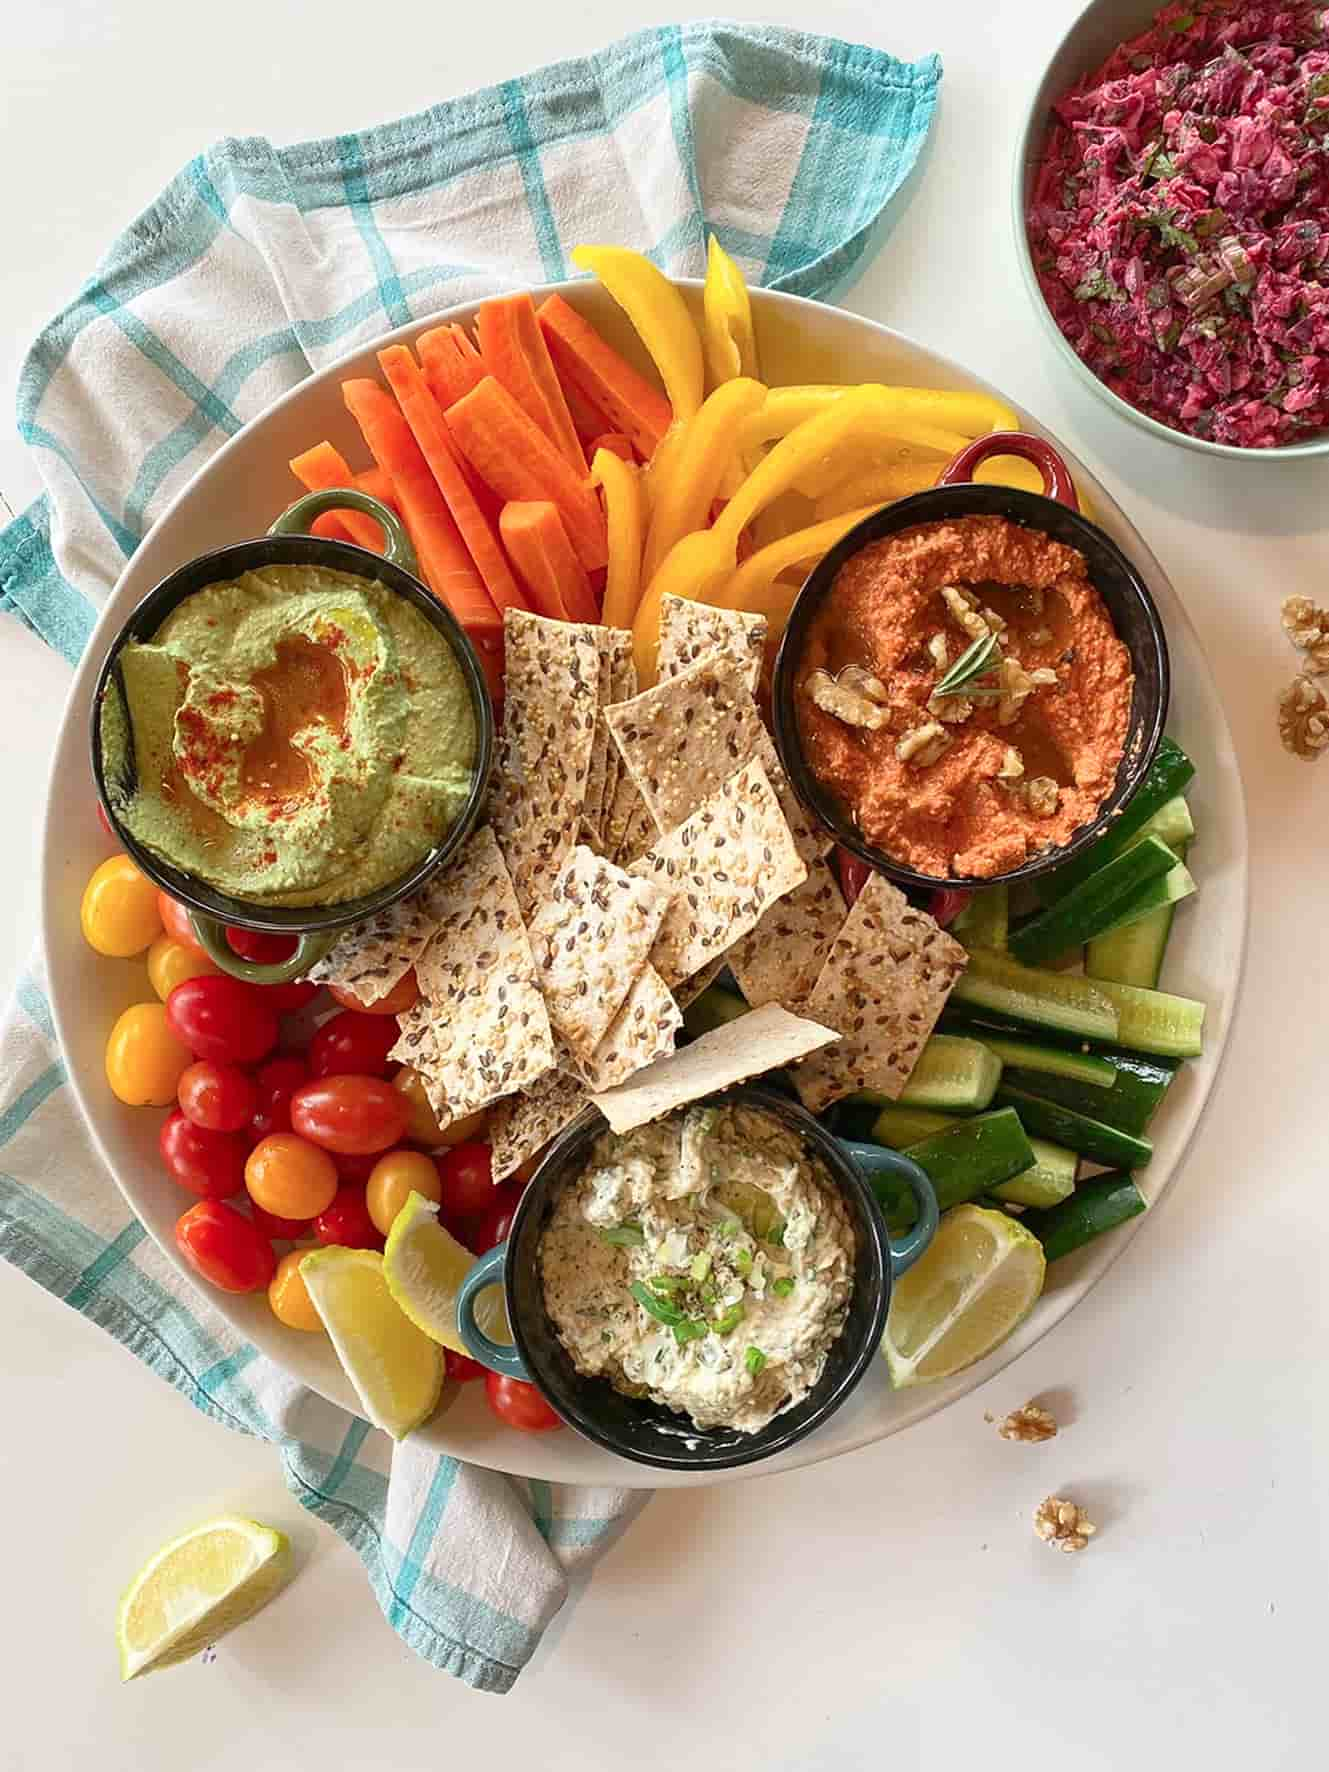 Ultimate-mediterranean-dips-platter-recipes-starters-sides